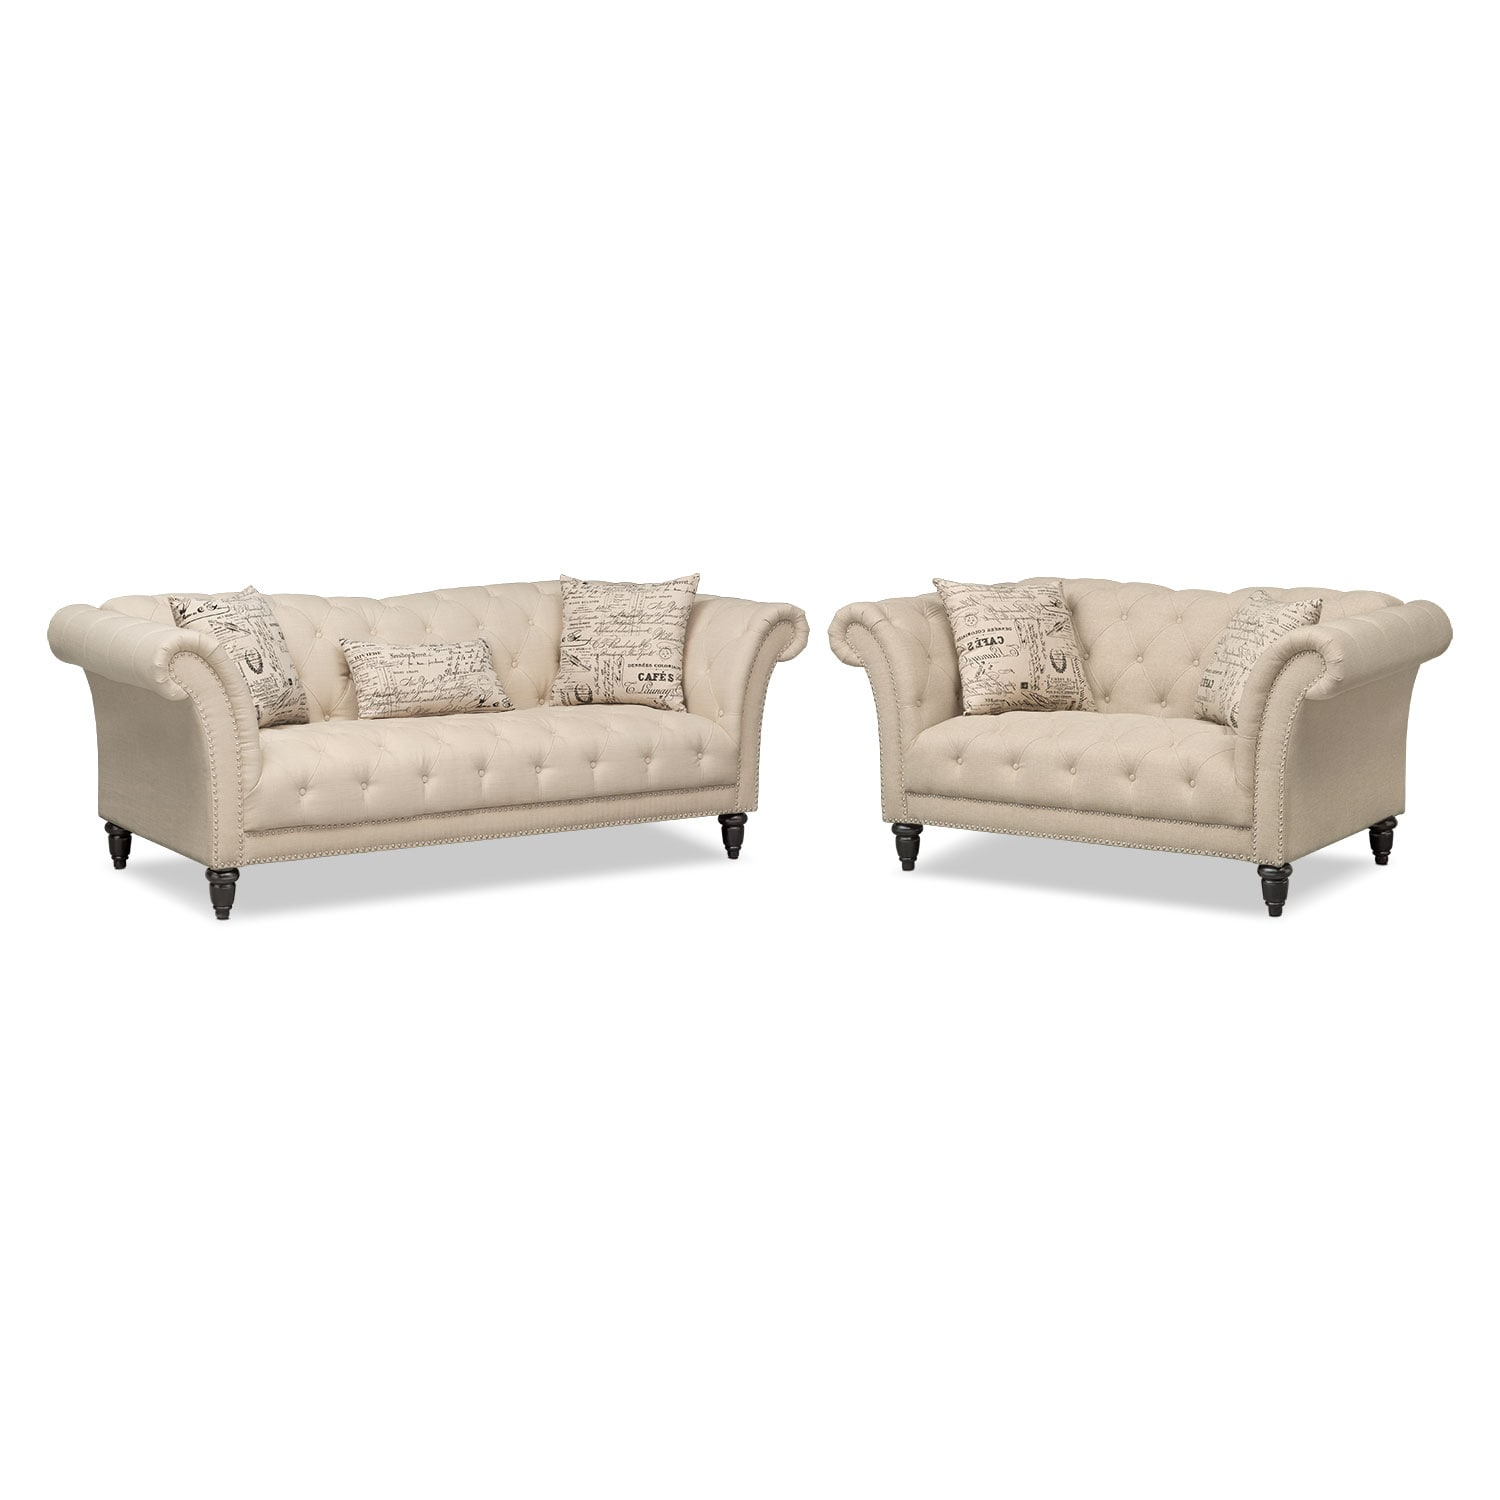 Superbe Marisol Sofa And Loveseat   Beige